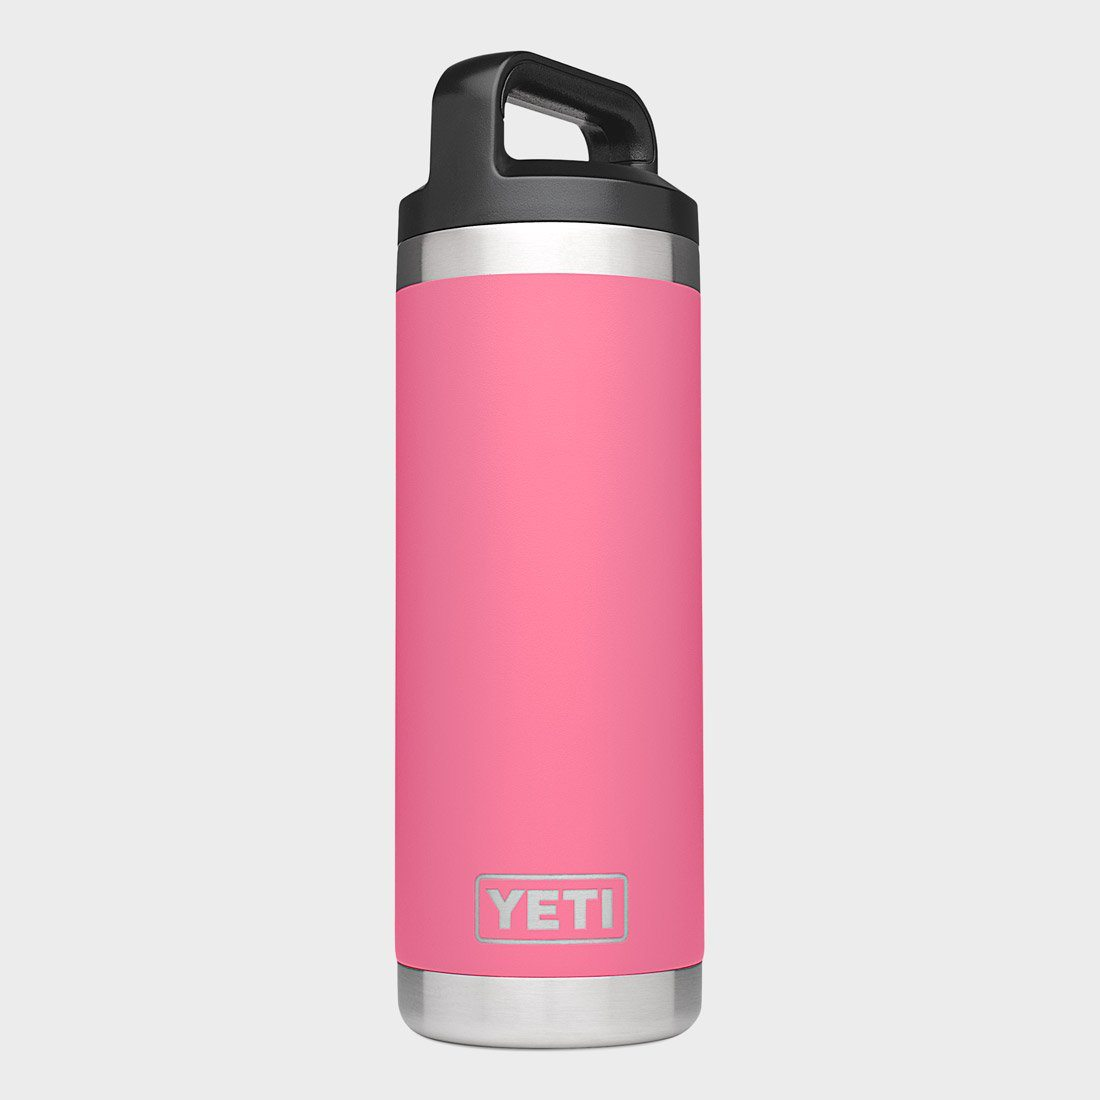 Yeti Rambler 18oz Bottle Limited Edition: Harbor Pink